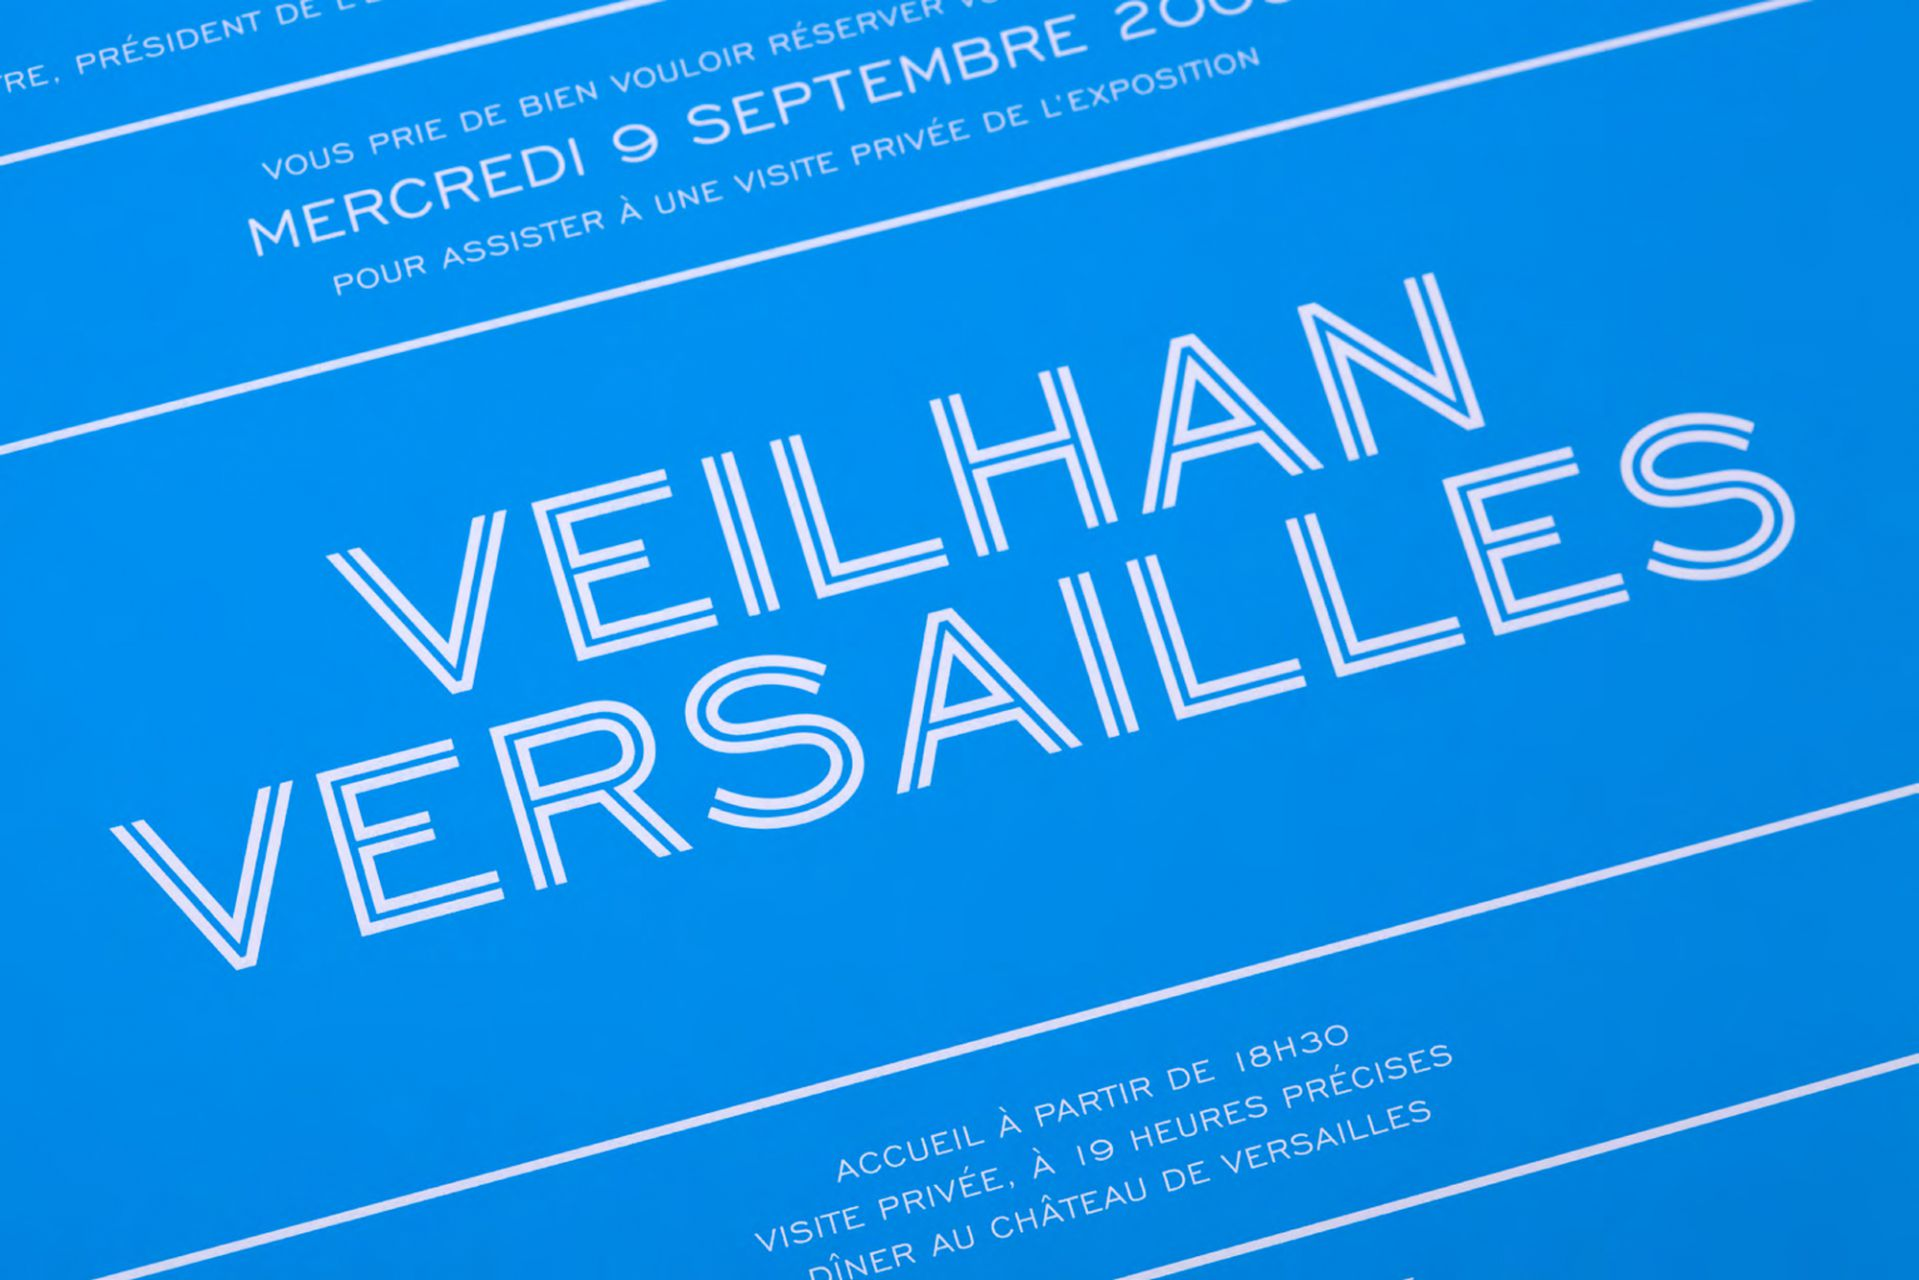 Veilhan Versailles identity & signage